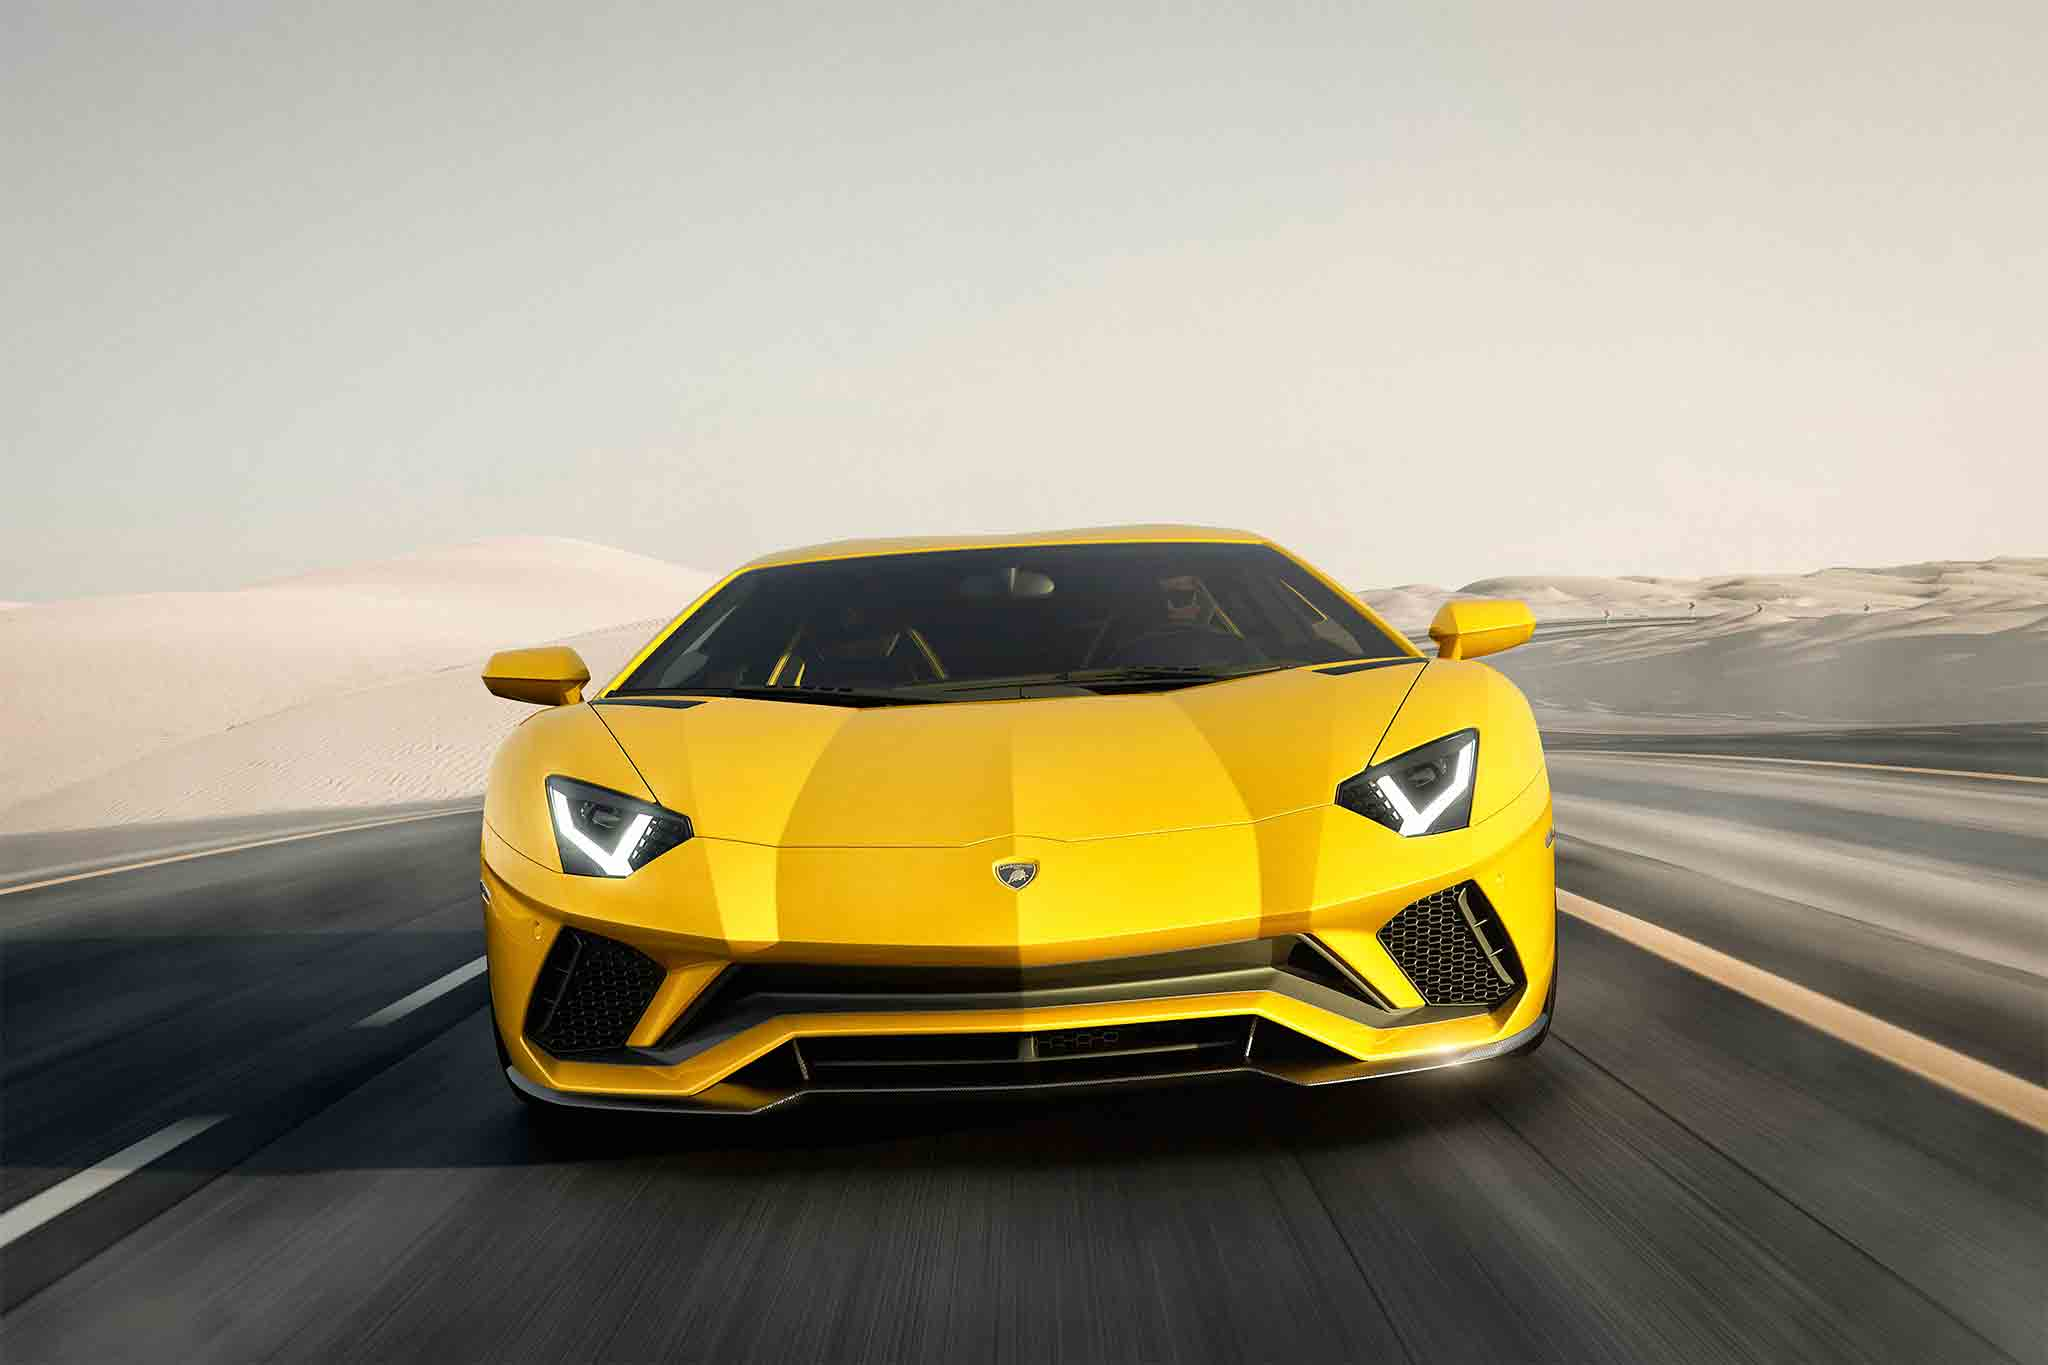 First Look 2017 Lamborghini Aventador S Automobile Magazine HD Wallpapers Download free images and photos [musssic.tk]